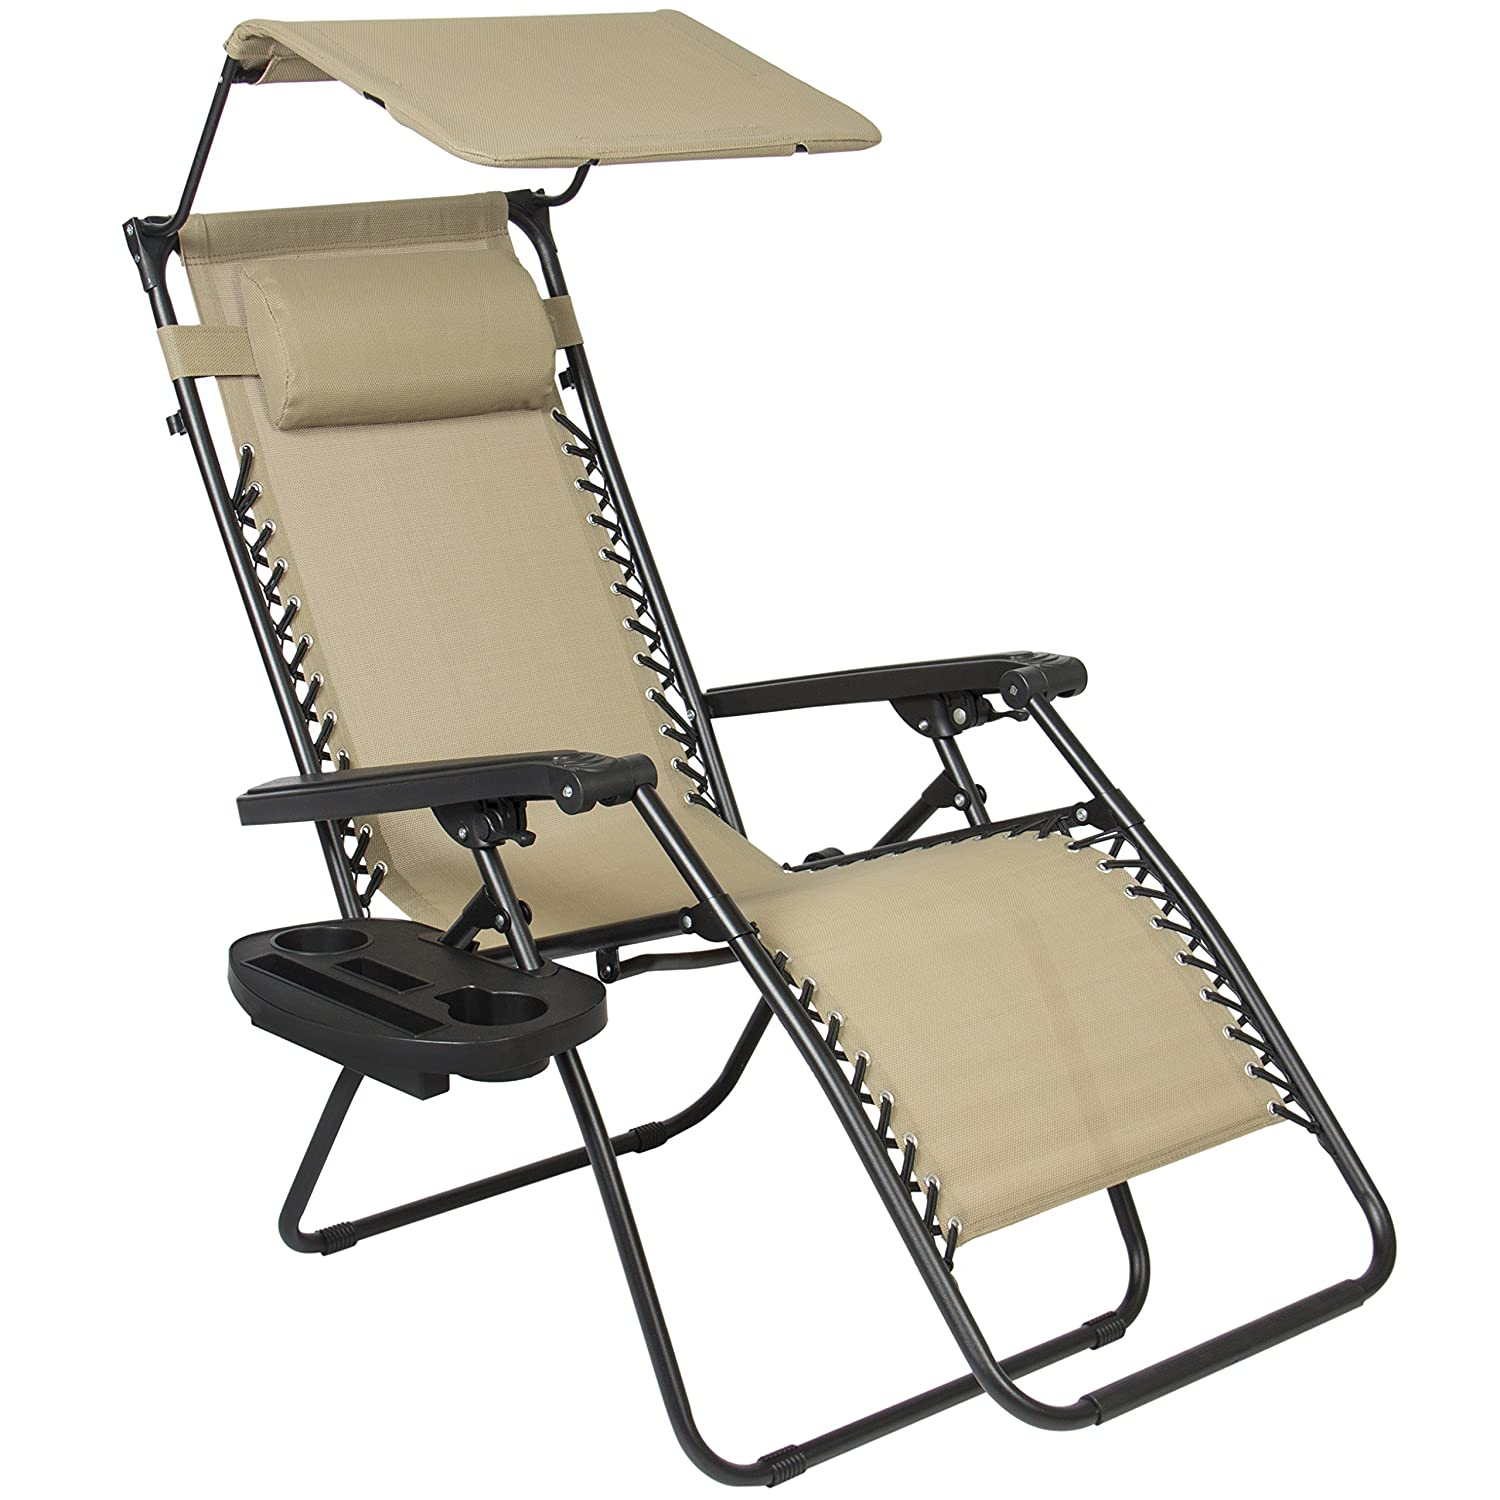 Furniture amp accessories 26 quot camo padded folding anti gravity chair - Amazon Com Best Choice Products Zero Gravity Canopy Sunshade Lounge Chair Cup Holder Patio Outdoor Garden Tan Patio Lawn Garden